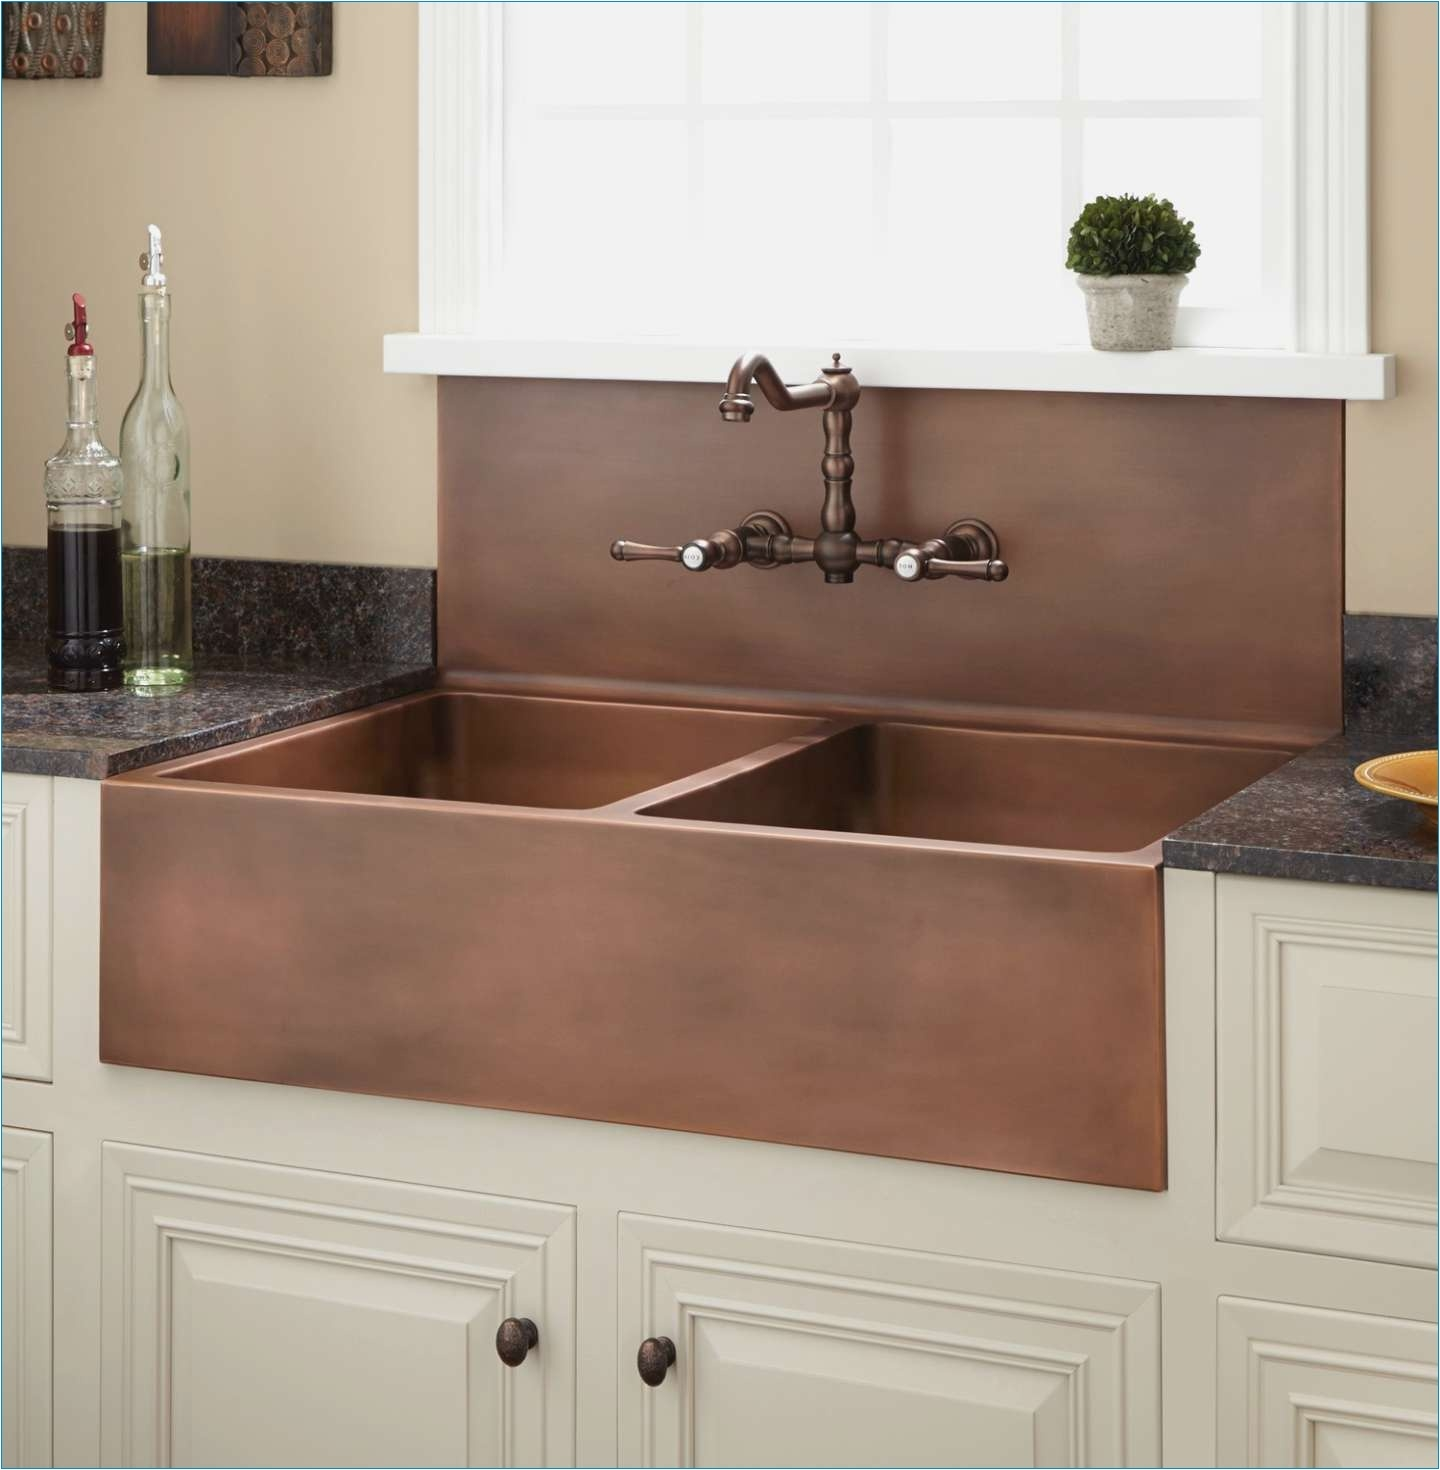 kitchen cabinets sink lovely sink farm style kitchen farmhouse kitcheni 0d the best lowes sinks lowes bathroom storage cabinets home decorating